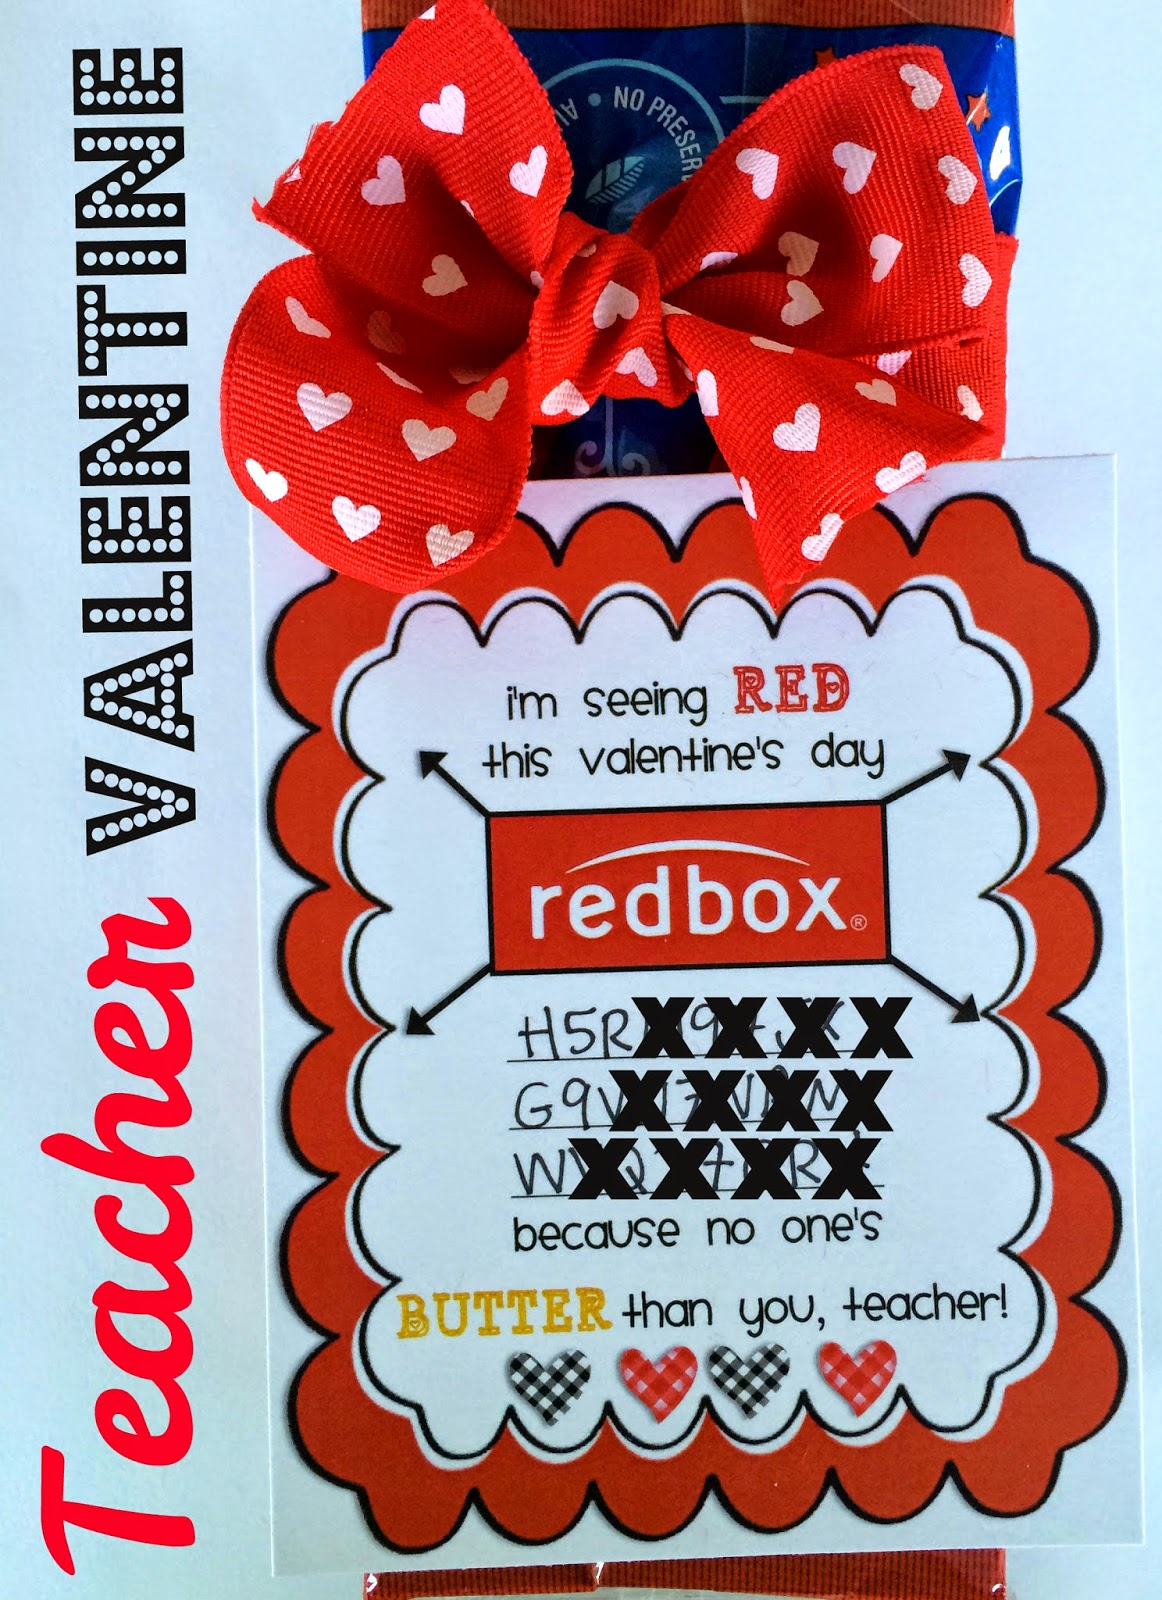 image regarding Redbox Printable titled Marci Coombs: Trainer Valentine Printable.